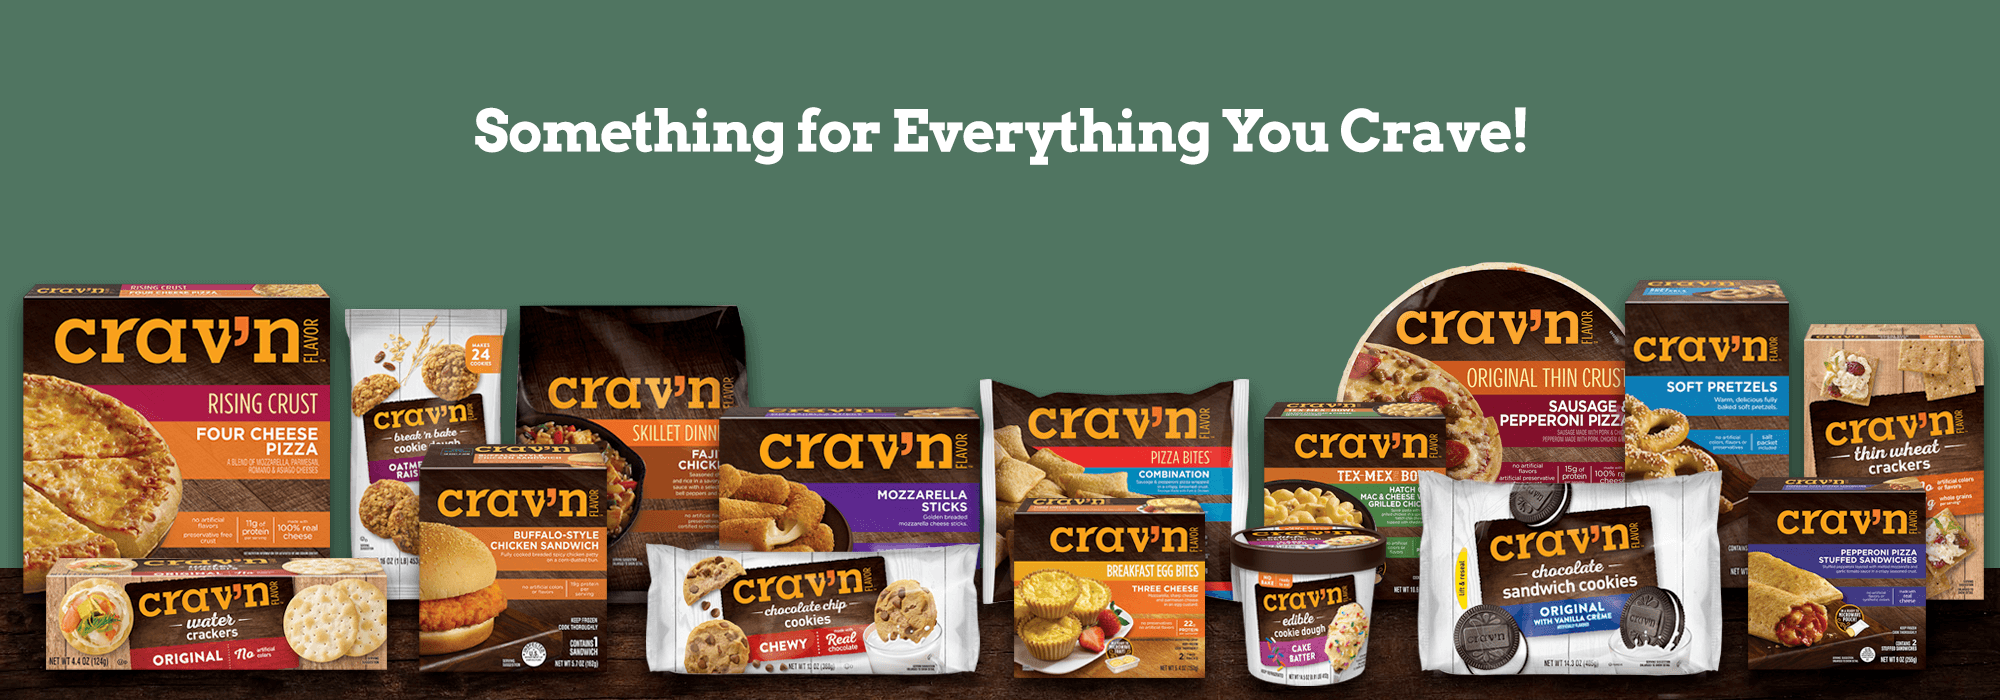 Something for Everything You Crave!